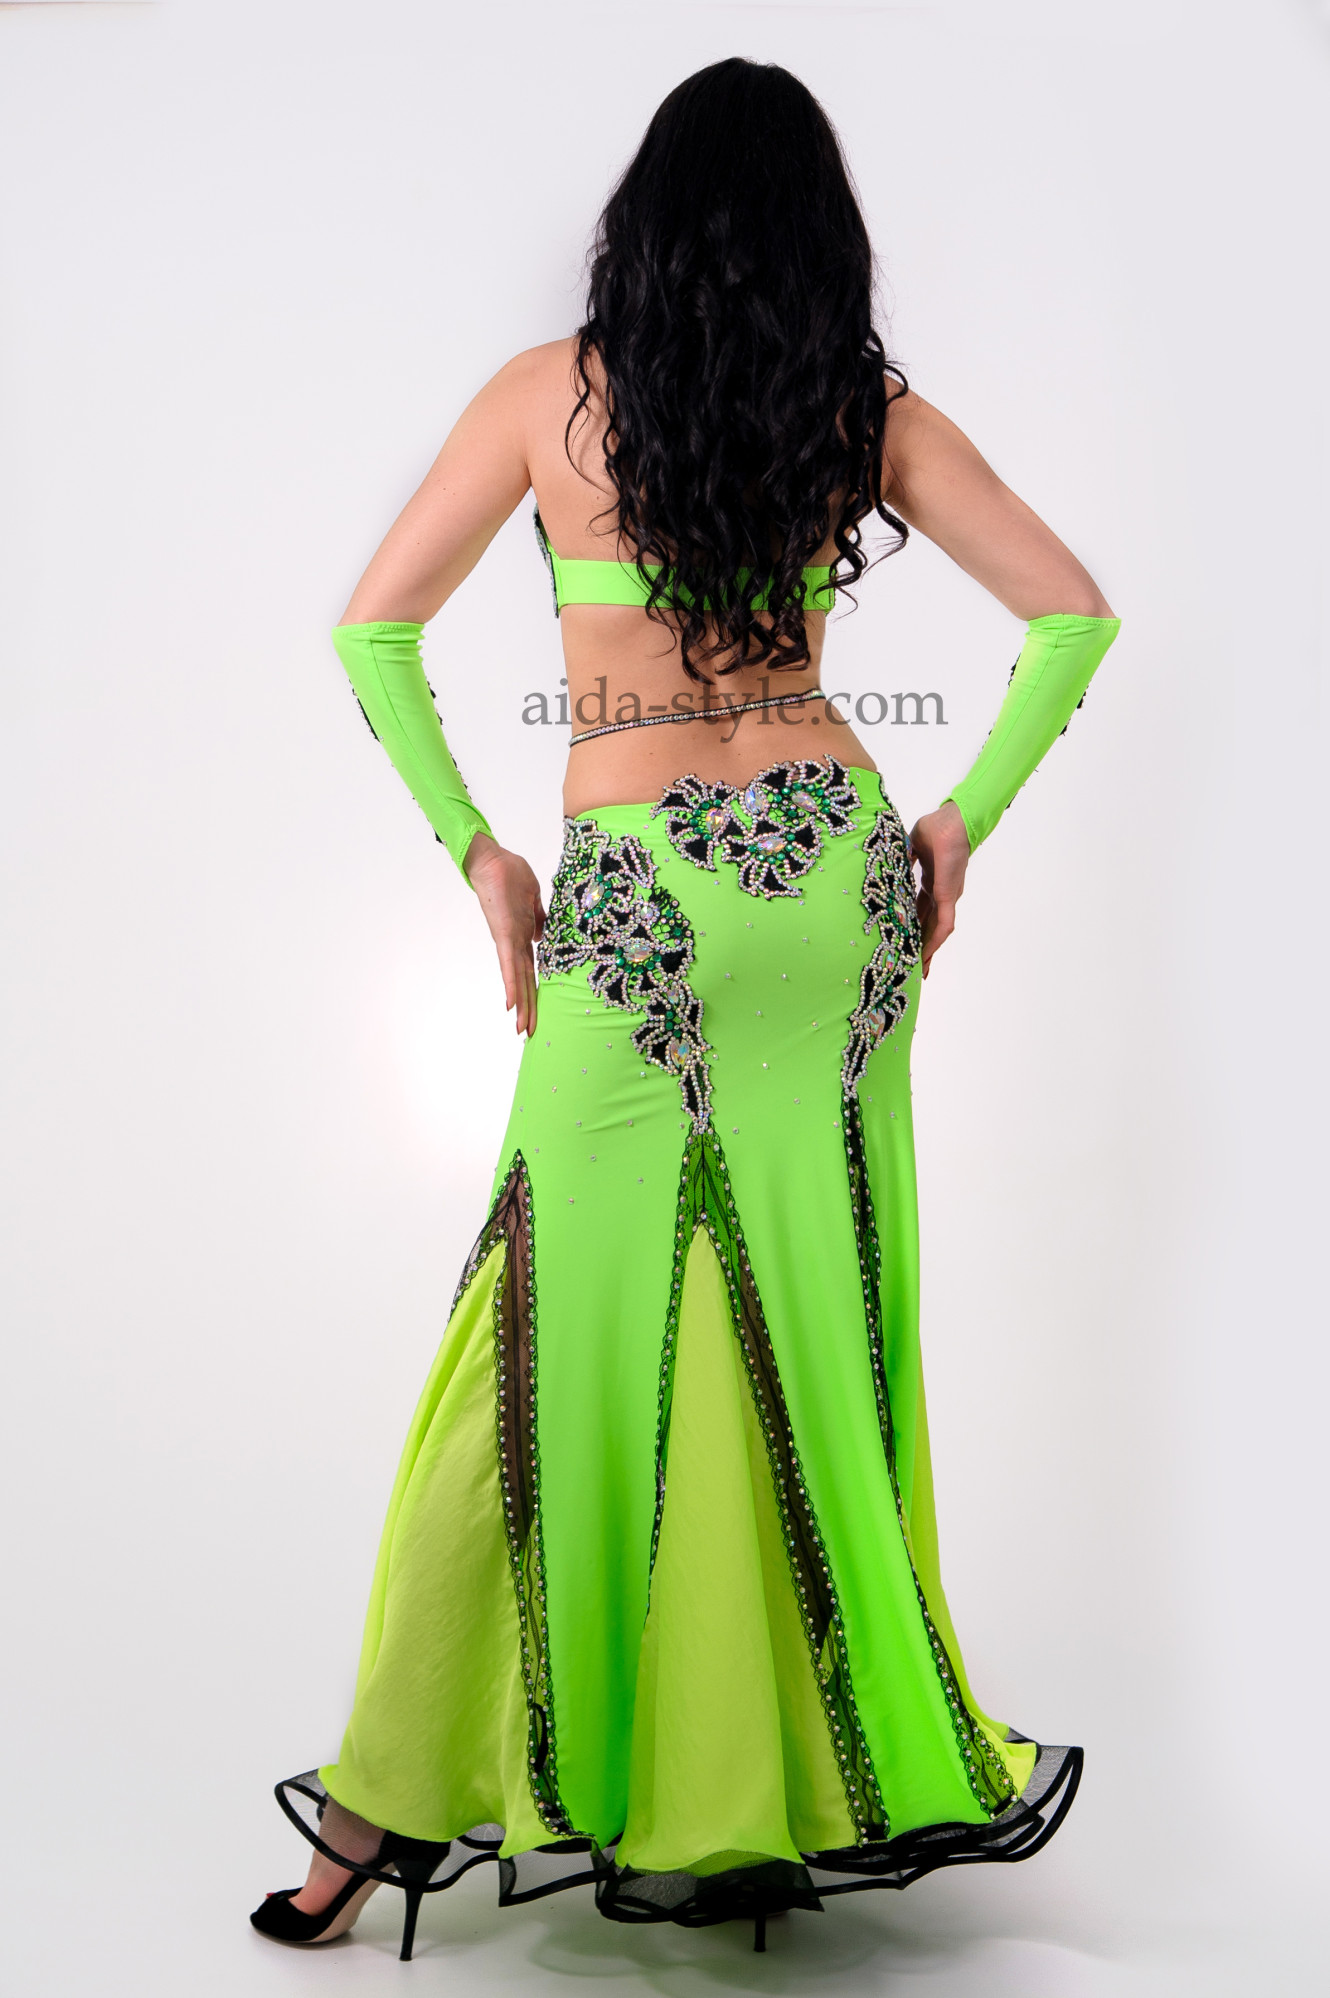 Green professional belly dance dress. Bra has rich decoration which matches patterns on hips. Comes with elbow length glowes